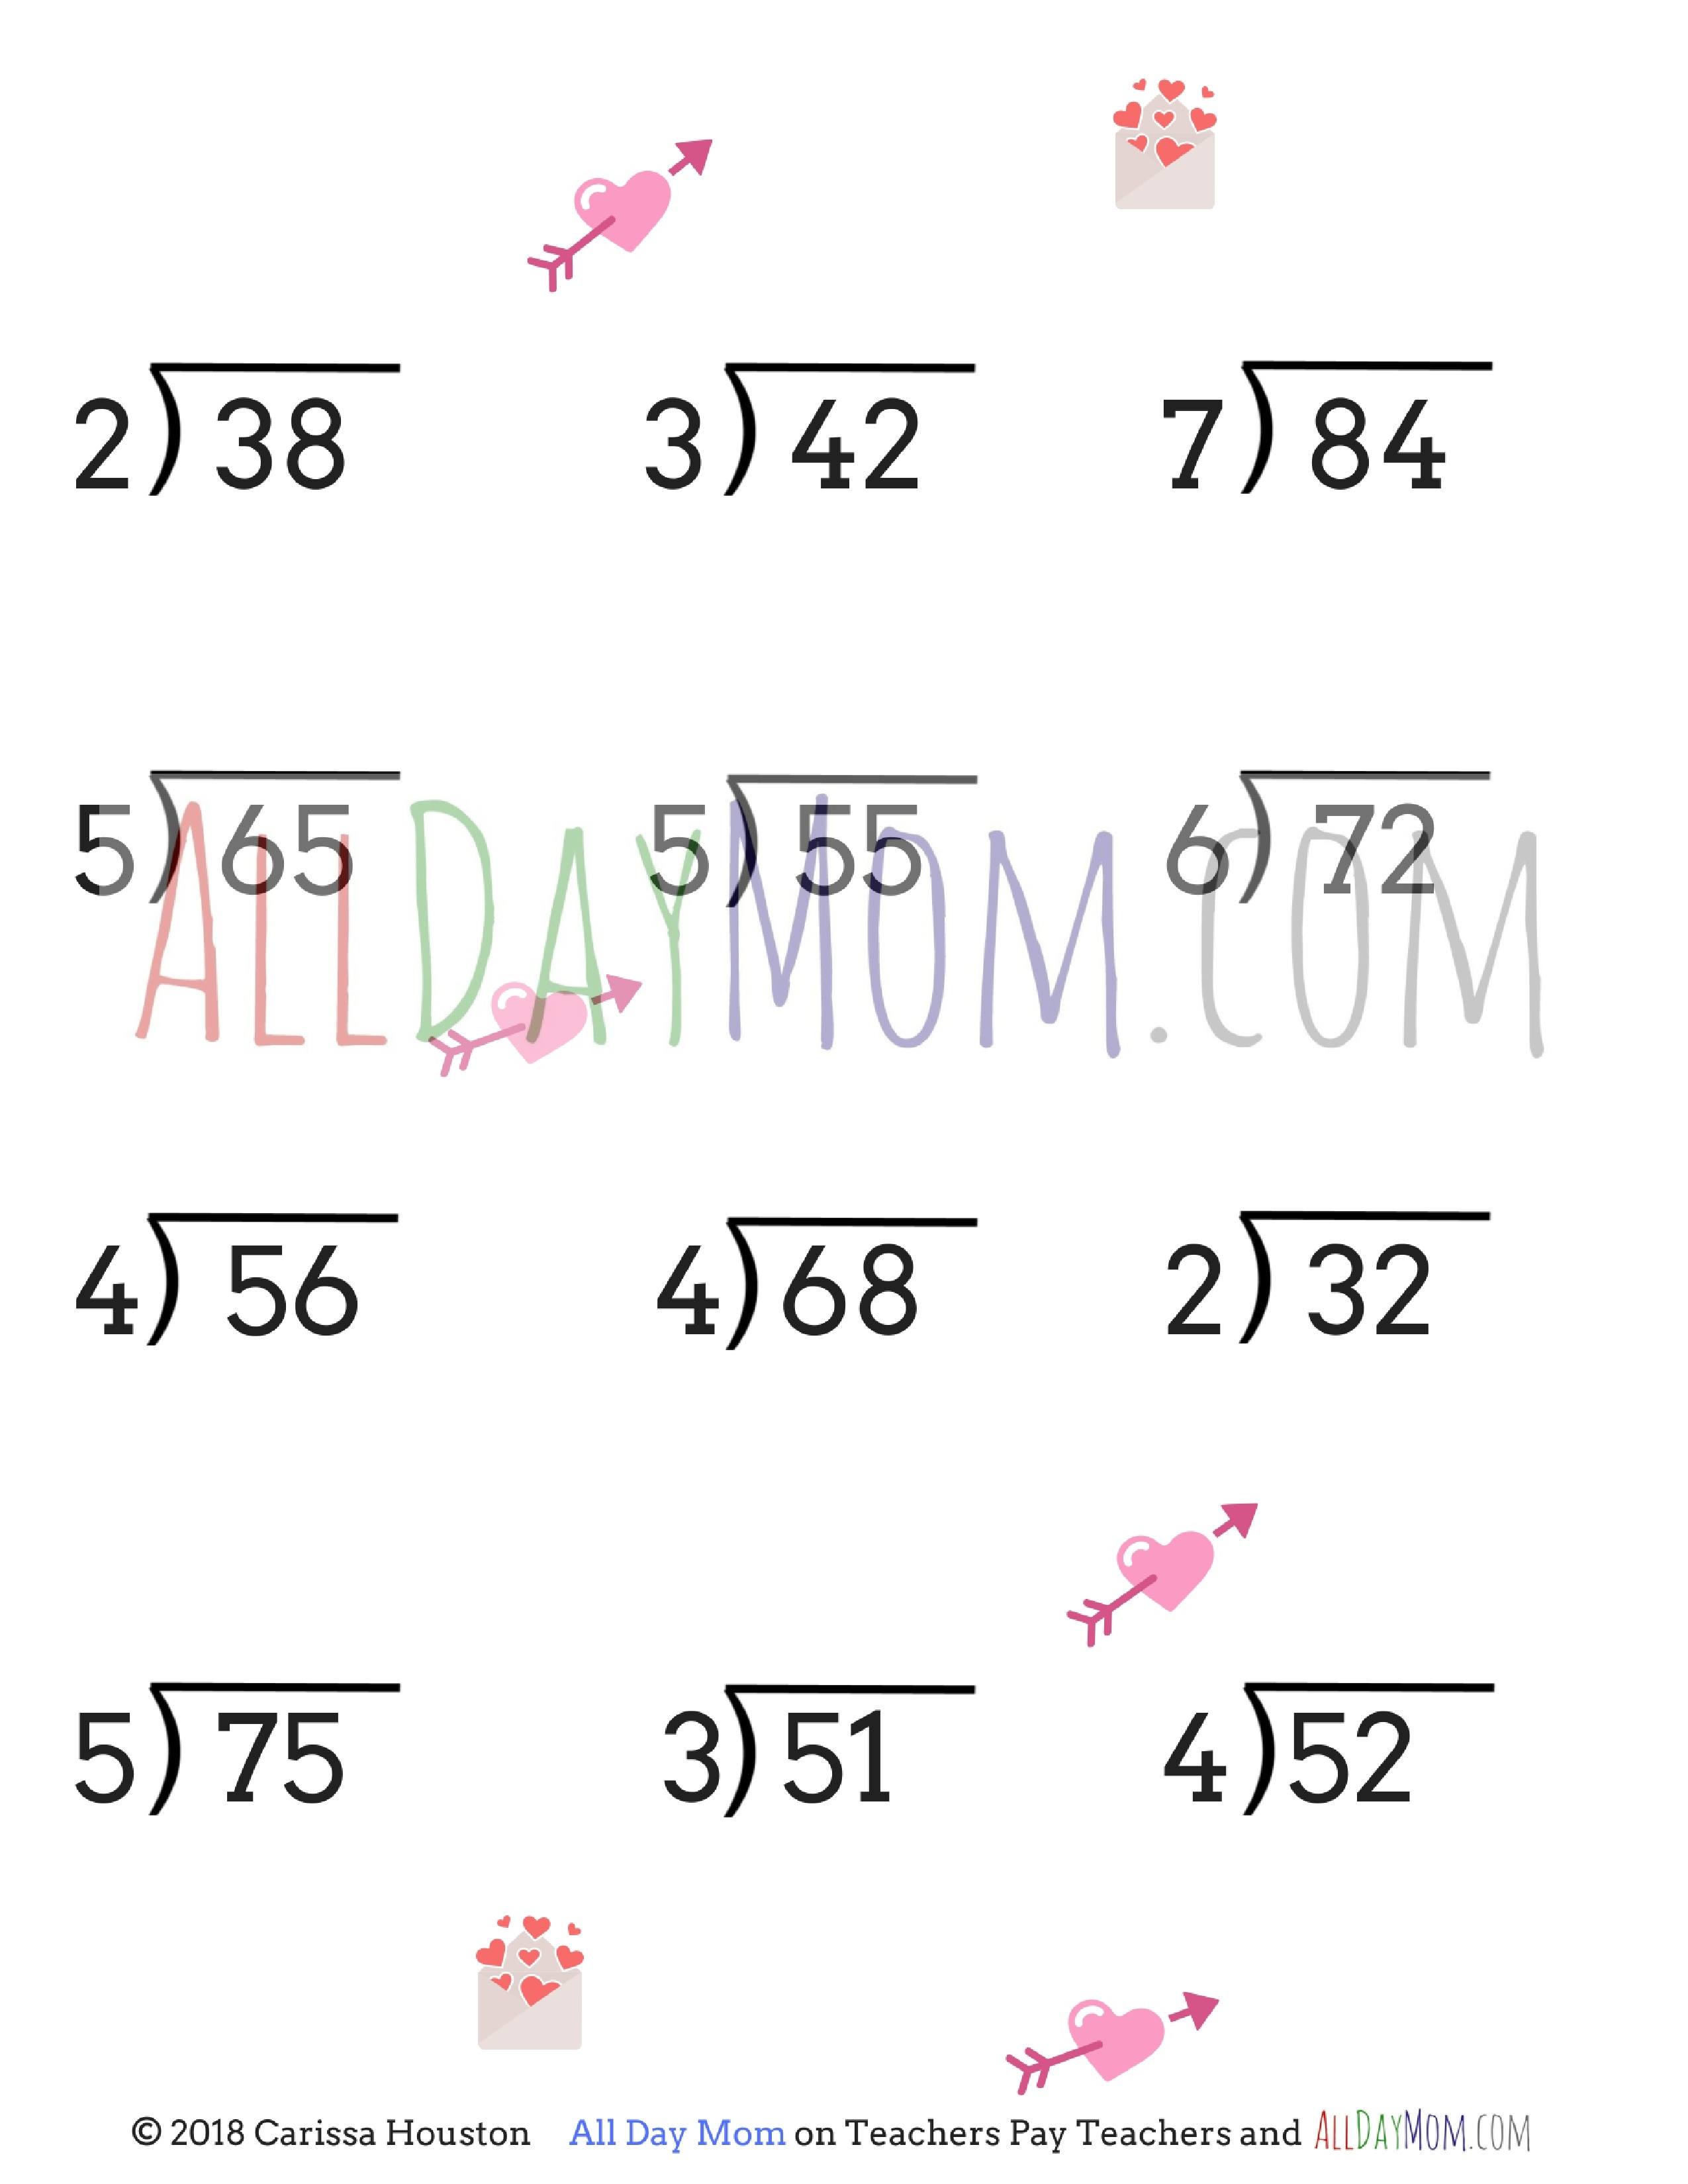 Free Printable Valentine's Day Math Worksheets! - Free Valentine Math Worksheets And Printables